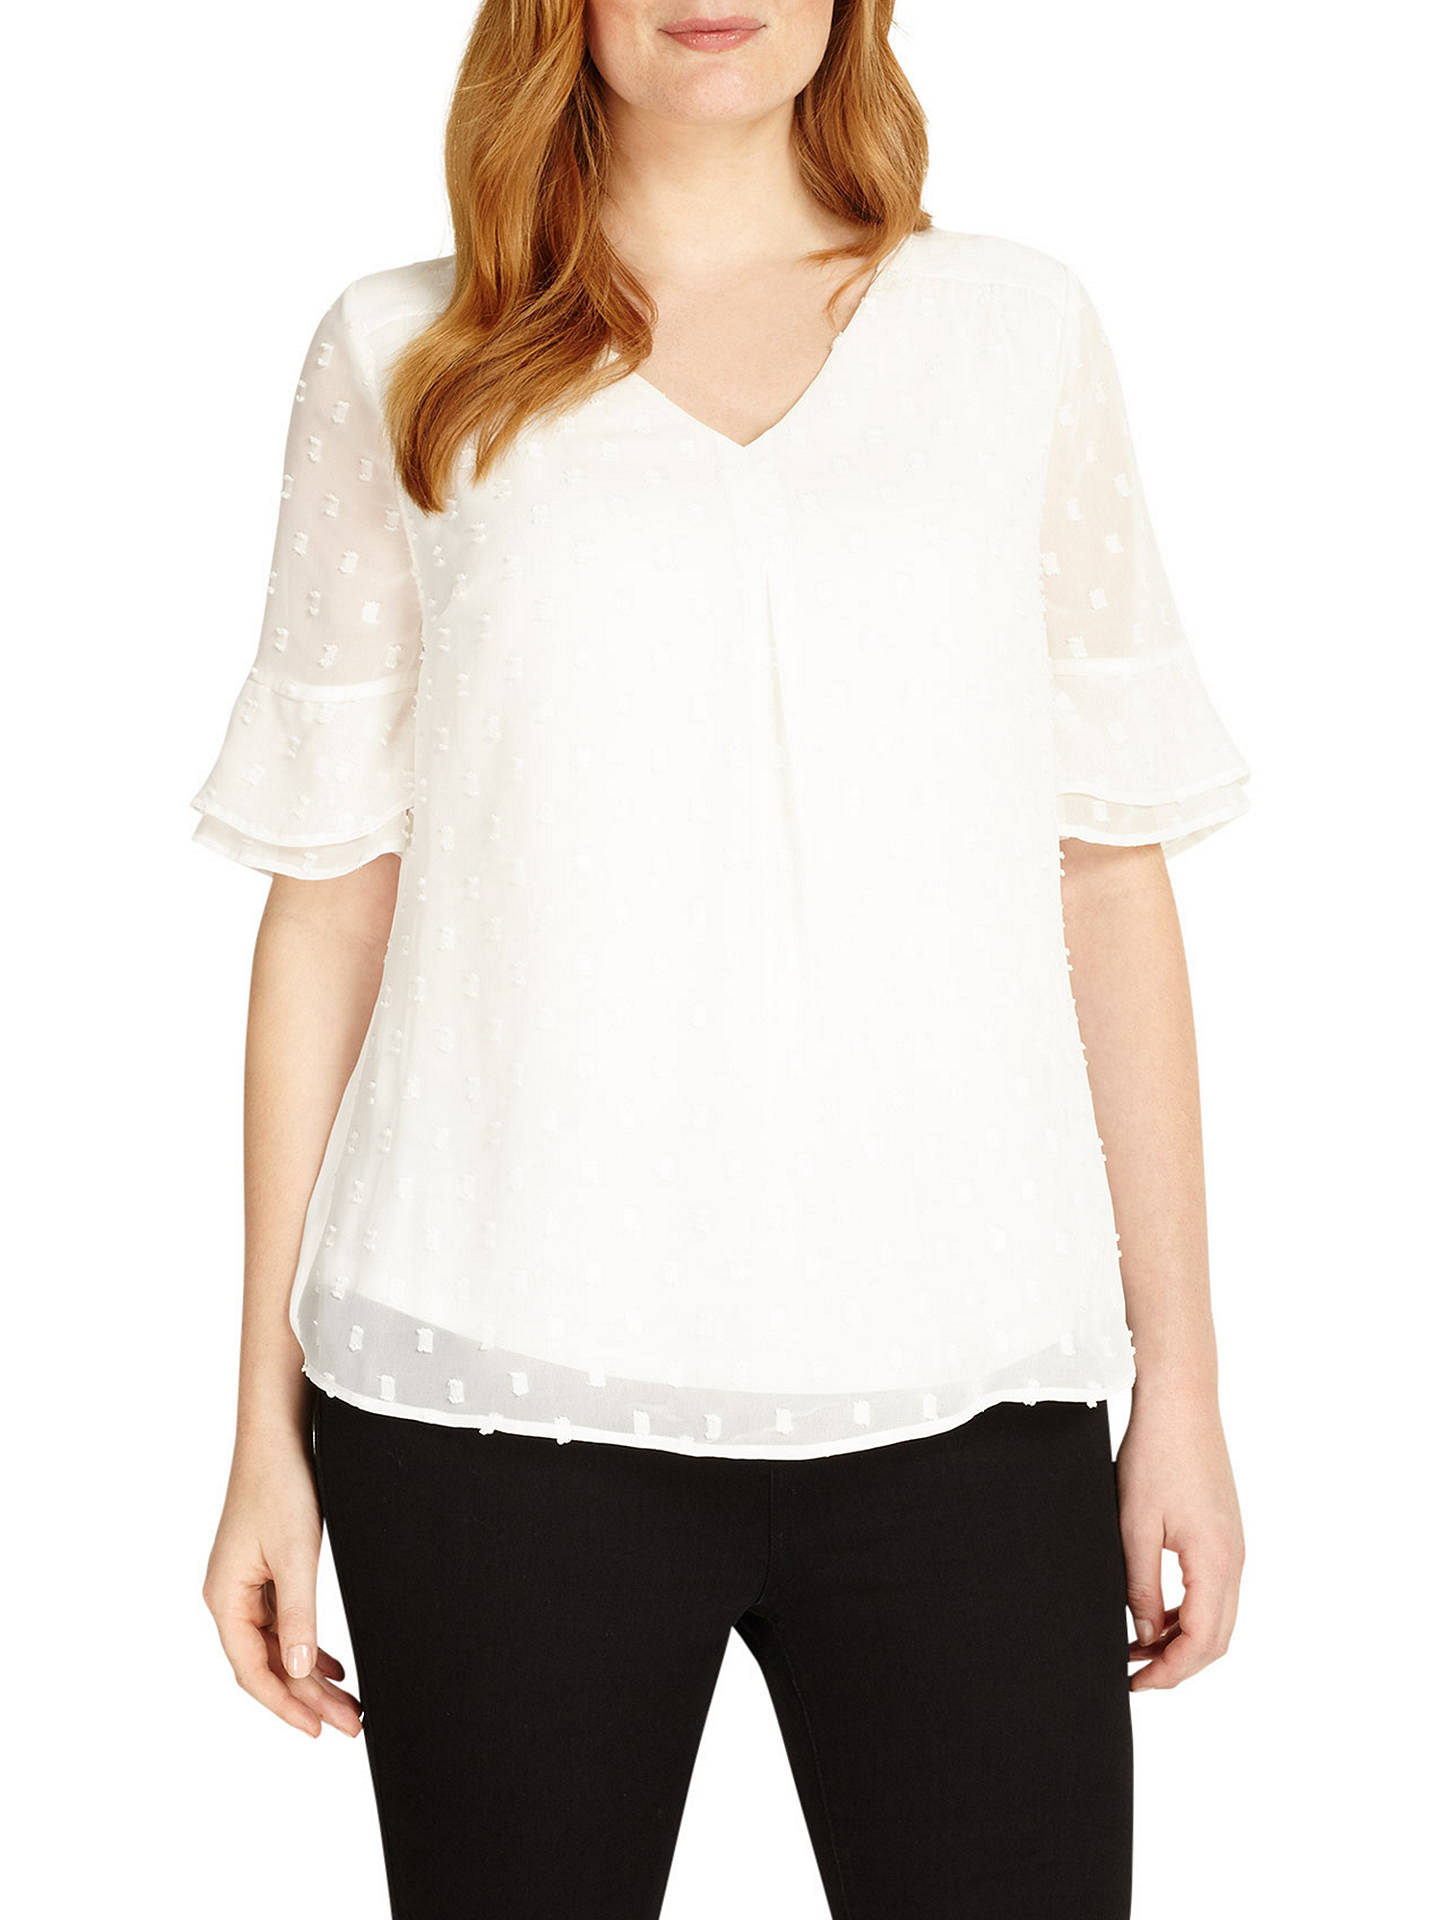 BuyStudio 8 Lisa-Marie Blouse, Ivory, 12 Online at johnlewis.com